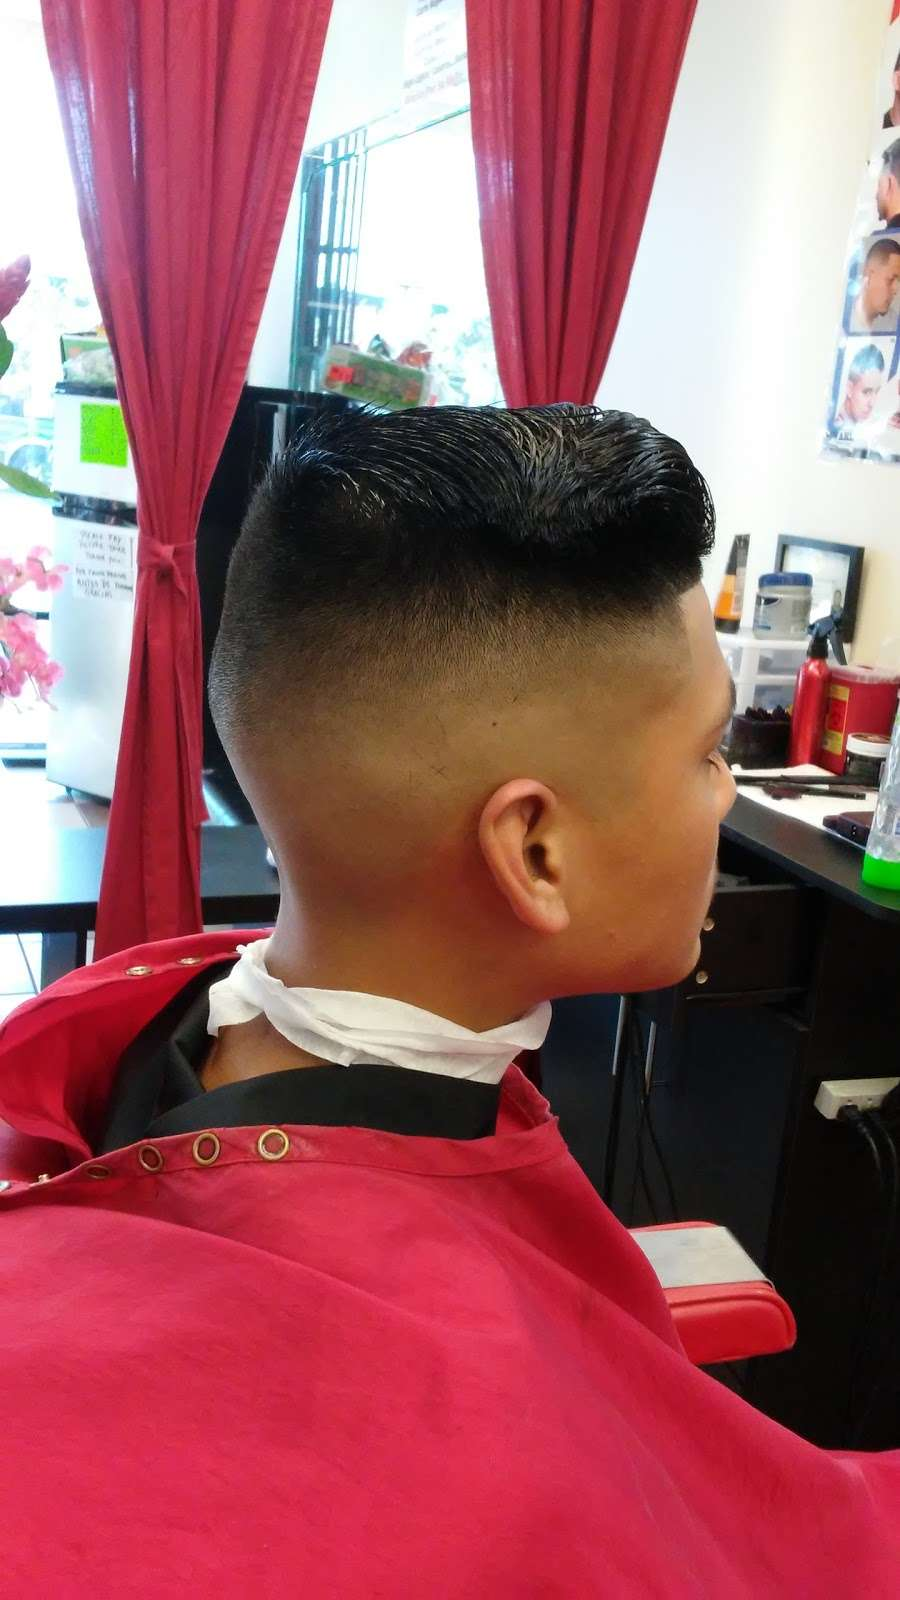 new style salon and barbershop - hair care  | Photo 5 of 10 | Address: 917 Greens Rd, Houston, TX 77060, USA | Phone: (281) 873-2121